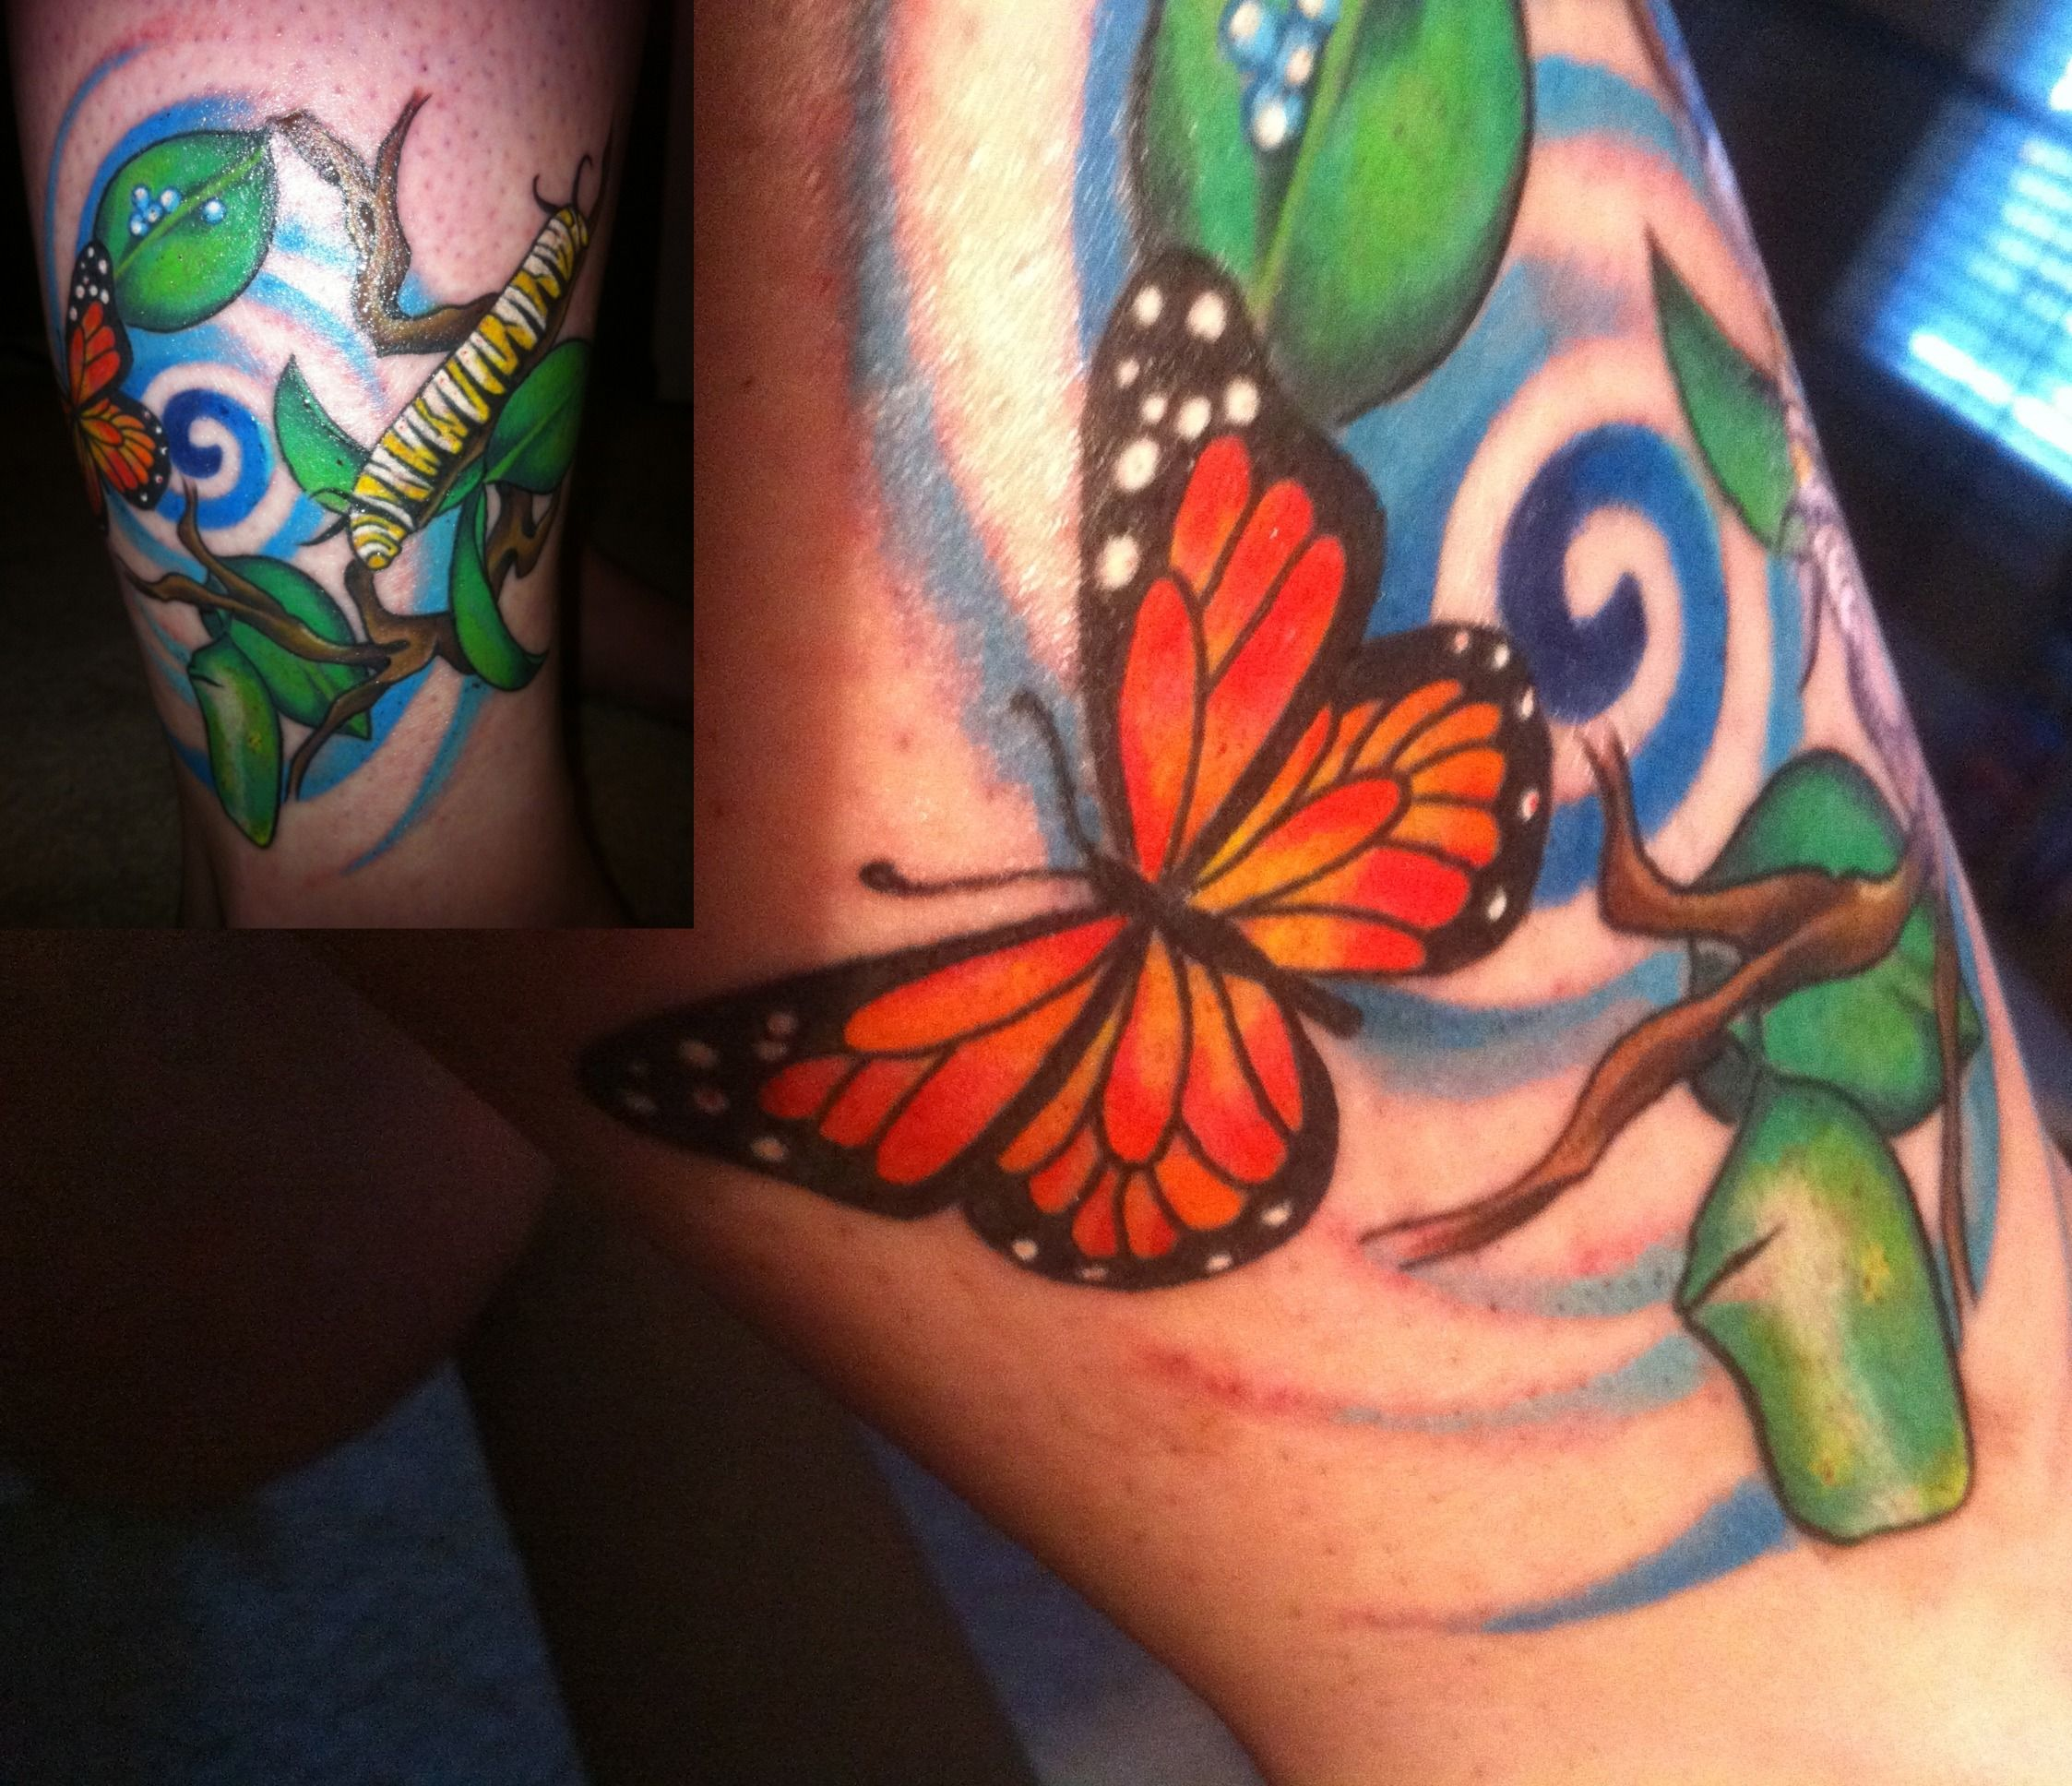 My Butterfly Life Cycle Tattoo Just When The Caterpillar